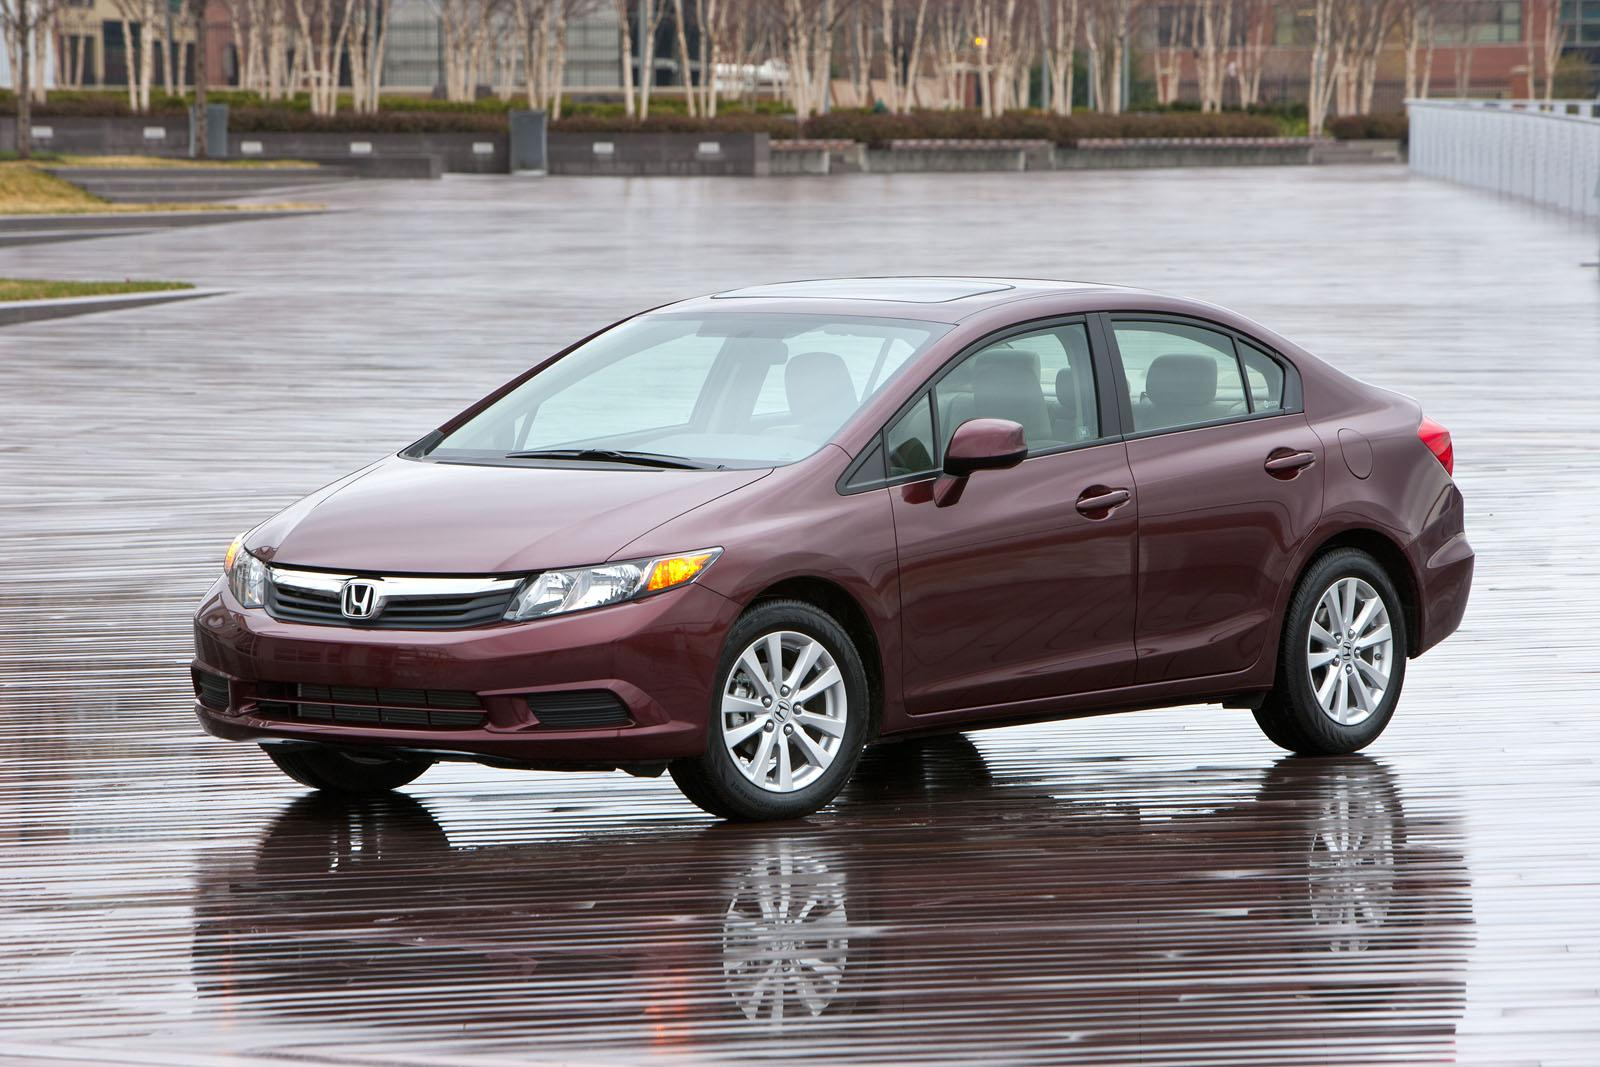 Honda Civic 2012 (US spec)